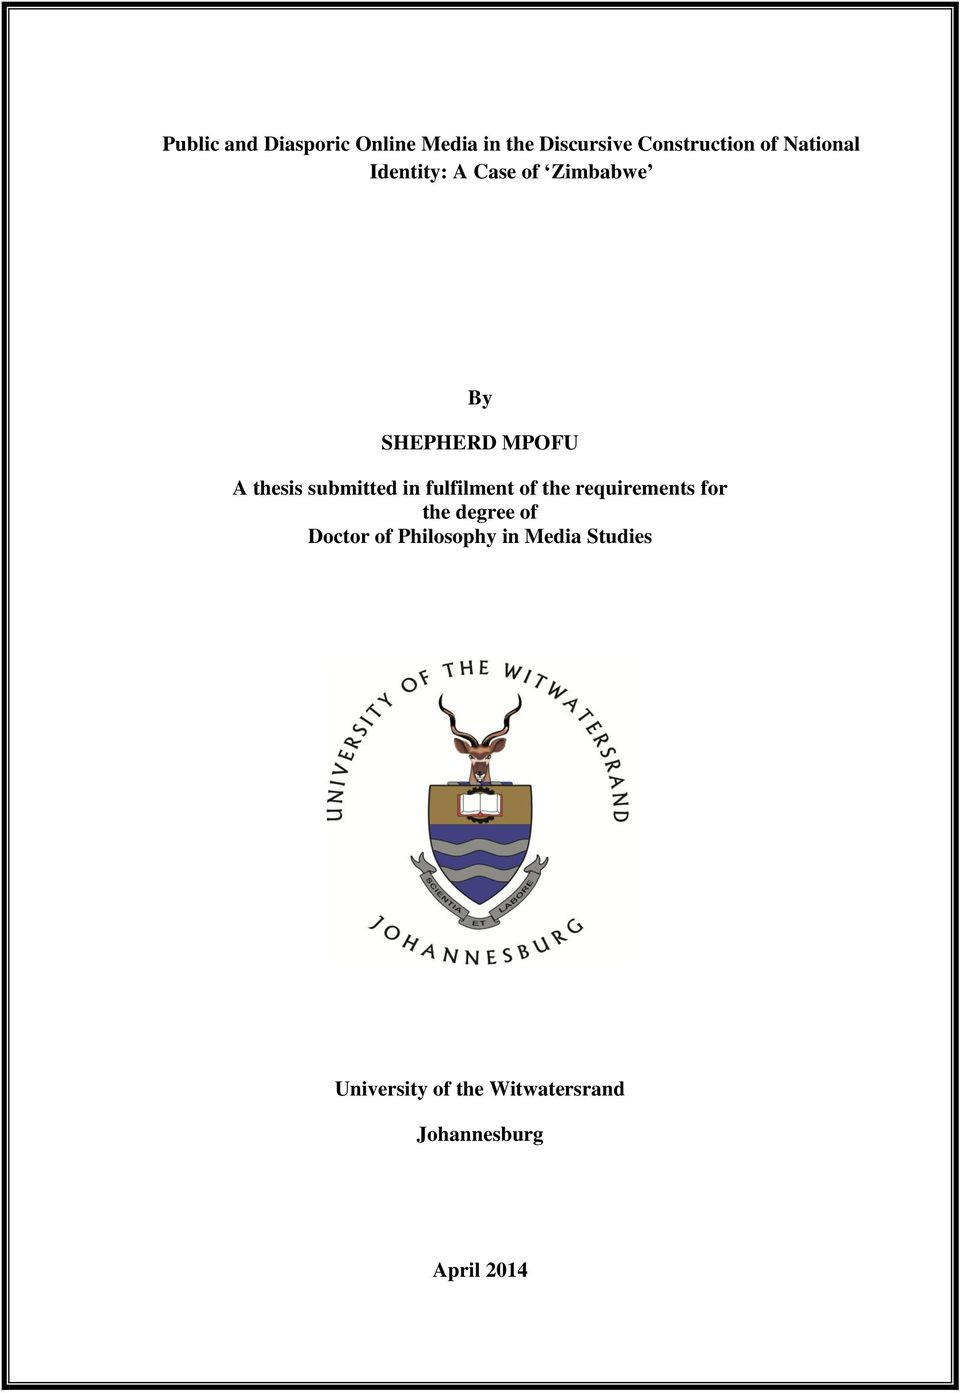 a thesis submitted for the degree of doctor of philosophy Introductory software engineering education by andrew patterson a thesis submitted in fulfilment of the requirements for the degree of doctor of philosophy.